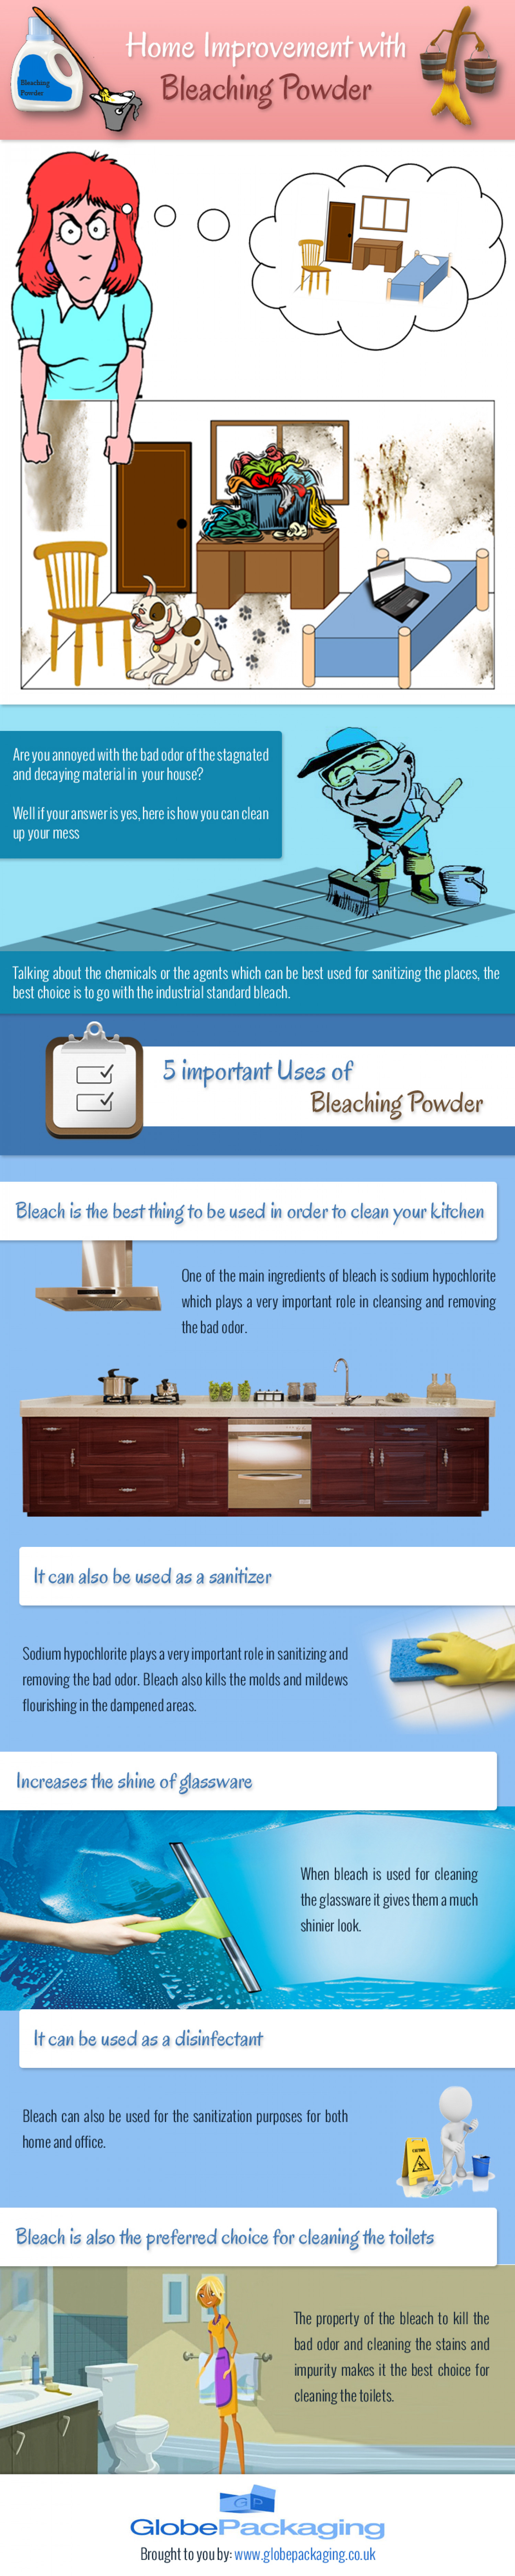 Home Improvement with Bleaching Powder Infographic